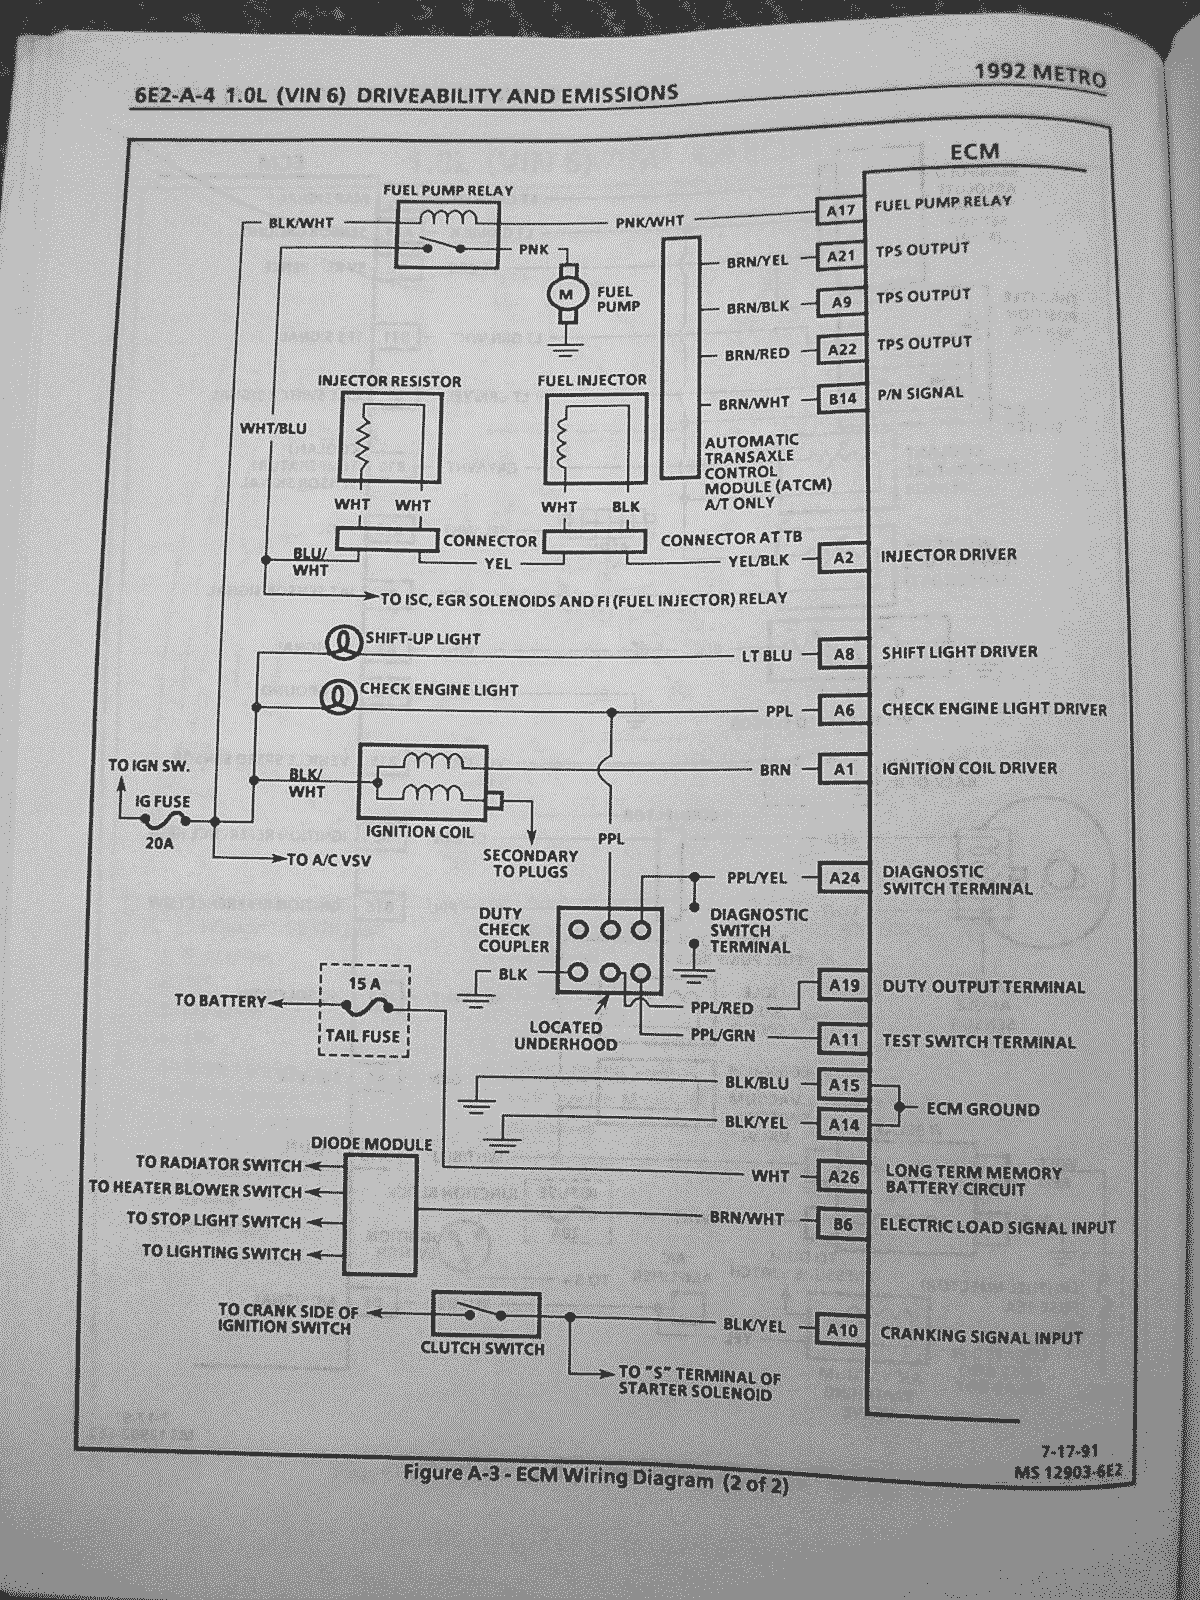 6e2 a 4 swift wiring diagram swift wiring diagram \u2022 free wiring diagrams 1990 geo prizm fuse box diagram at readyjetset.co